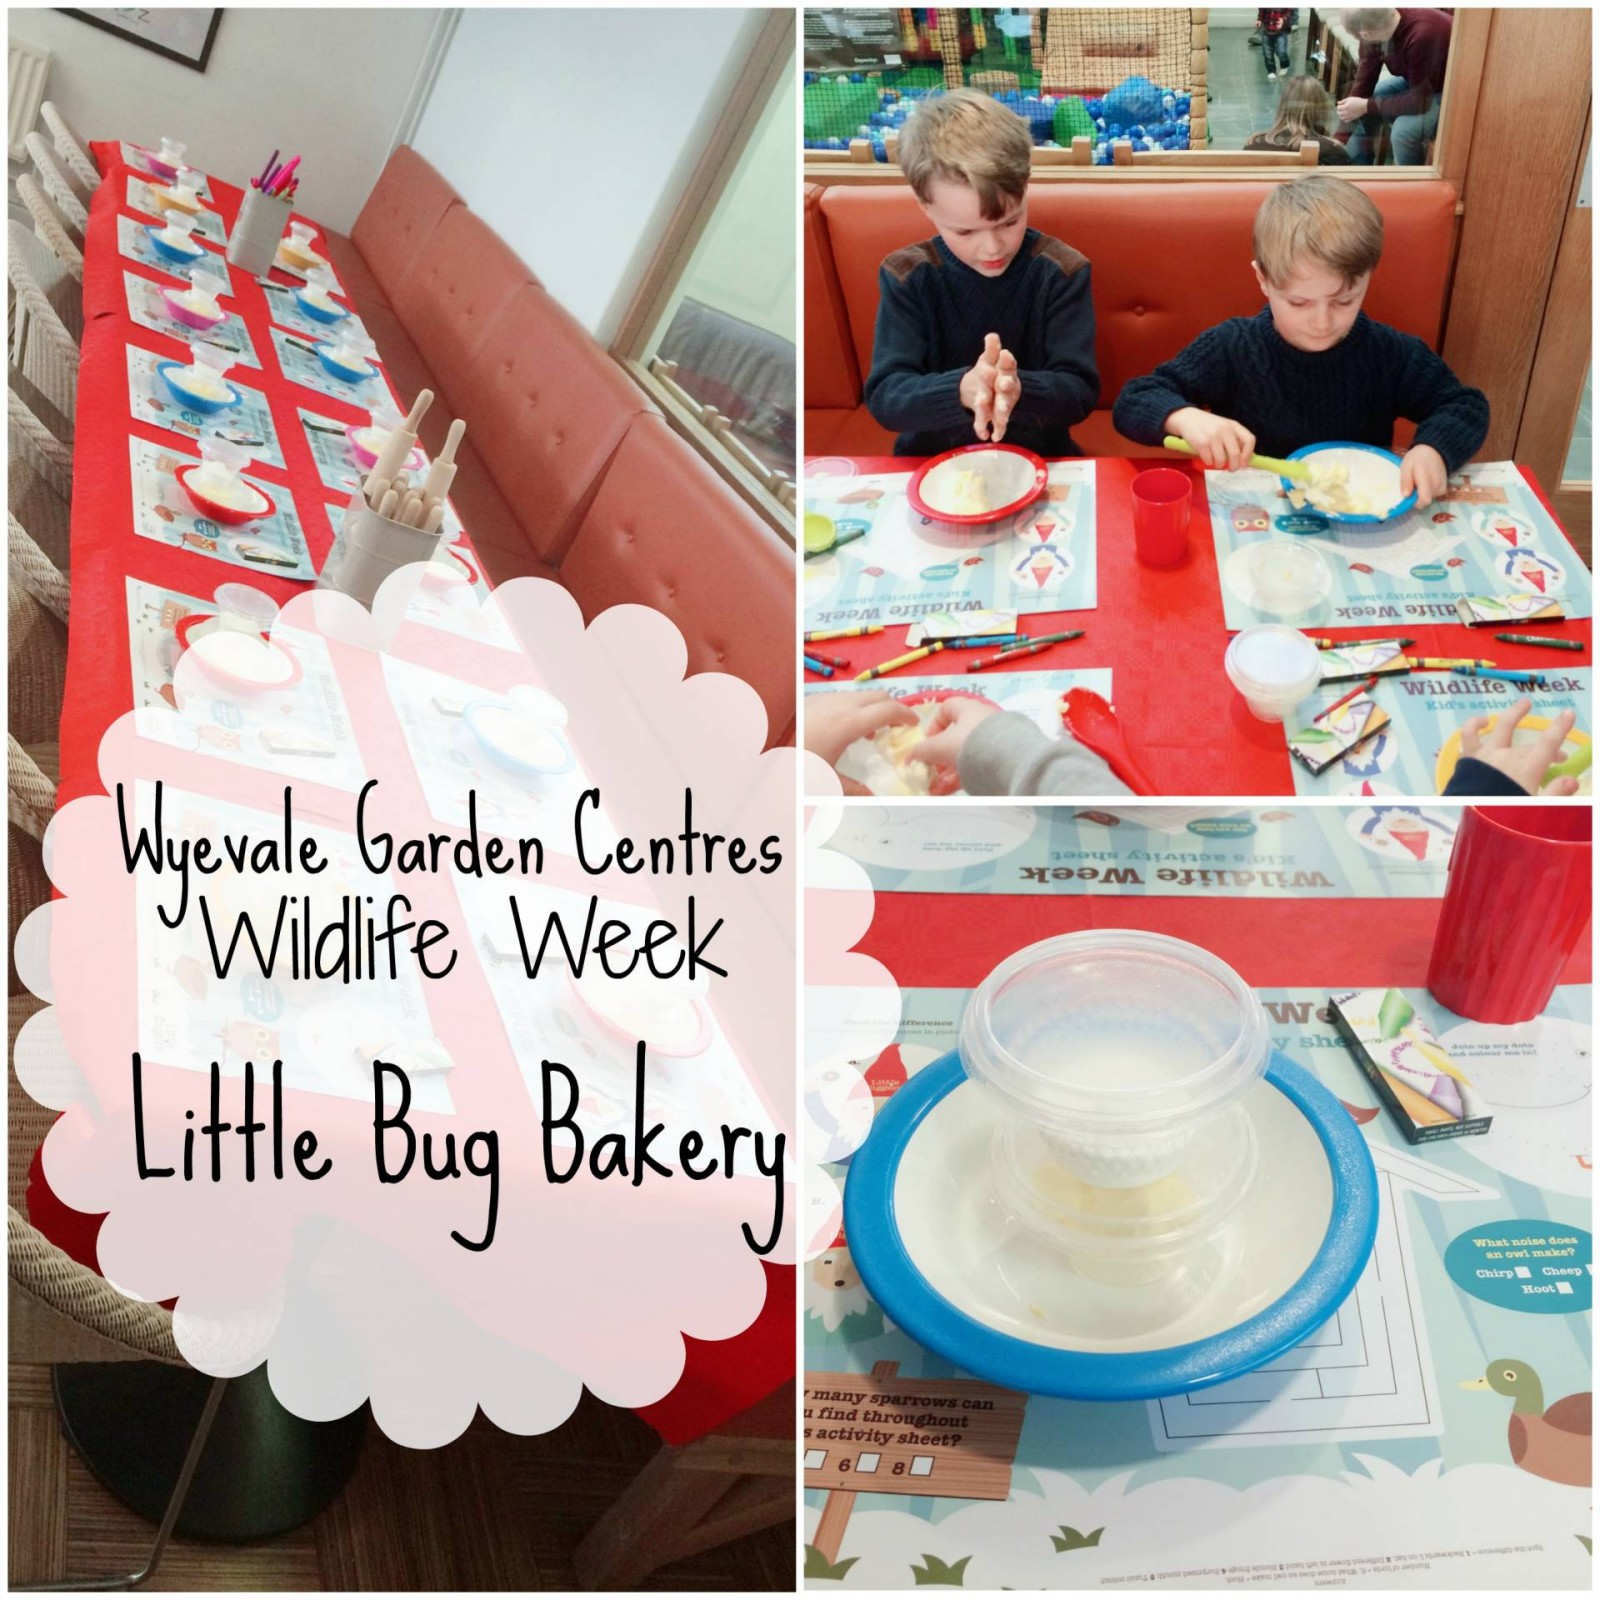 Little bug bakery at Wildlife week with Wyvale garden centres